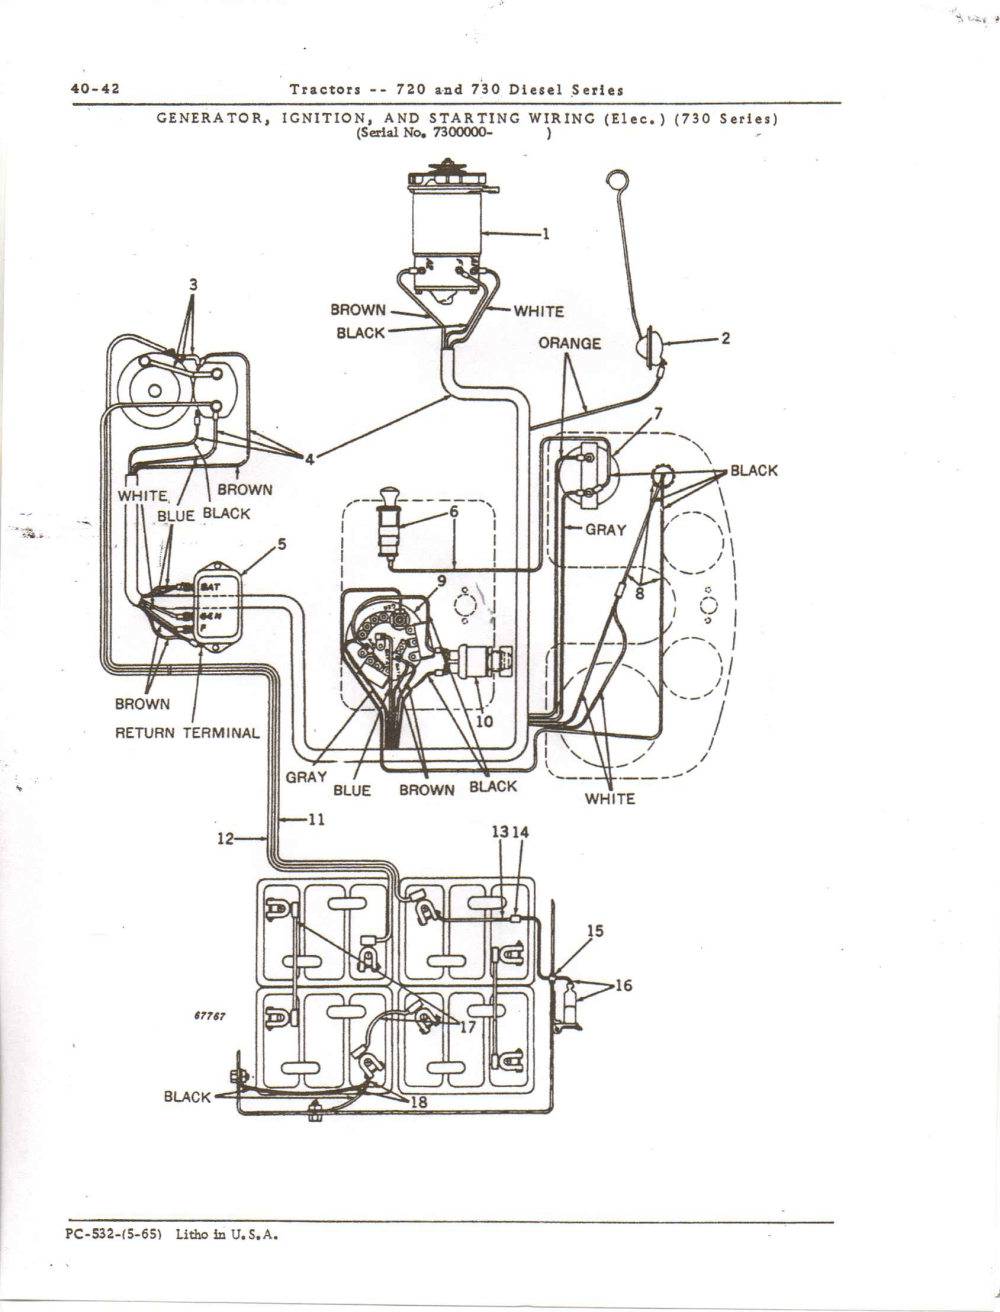 medium resolution of john deere 325 wiring diagram wiring diagram databasejohn deere lawn mower wiring diagram